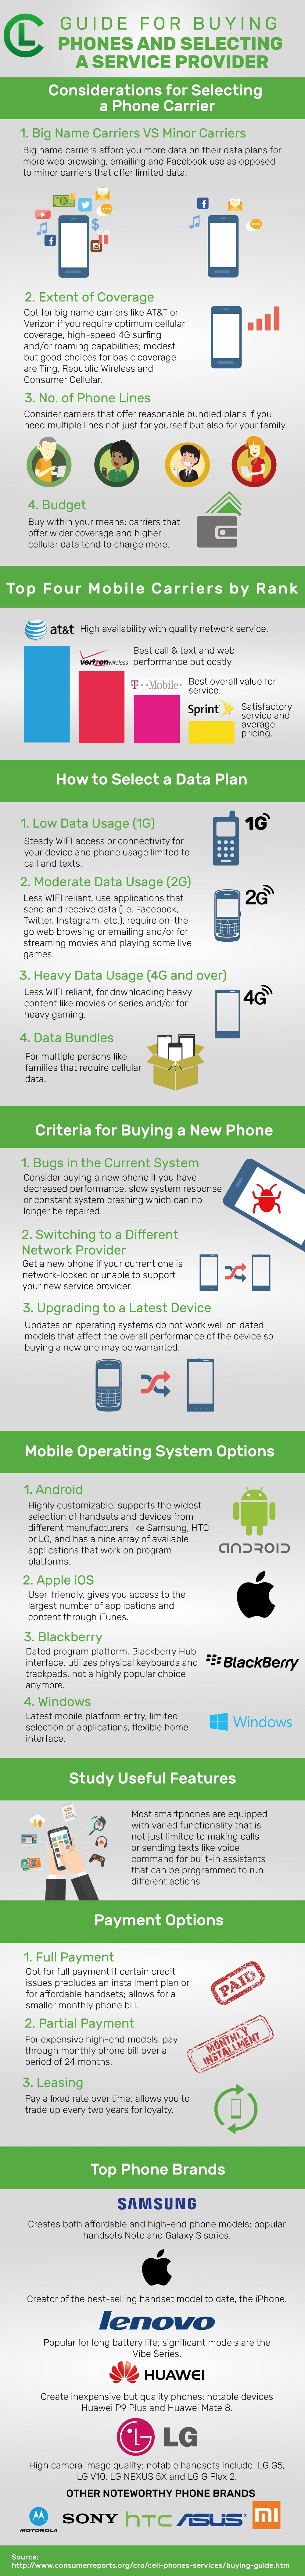 Guide For Buying Phones & Service Providers Infographic